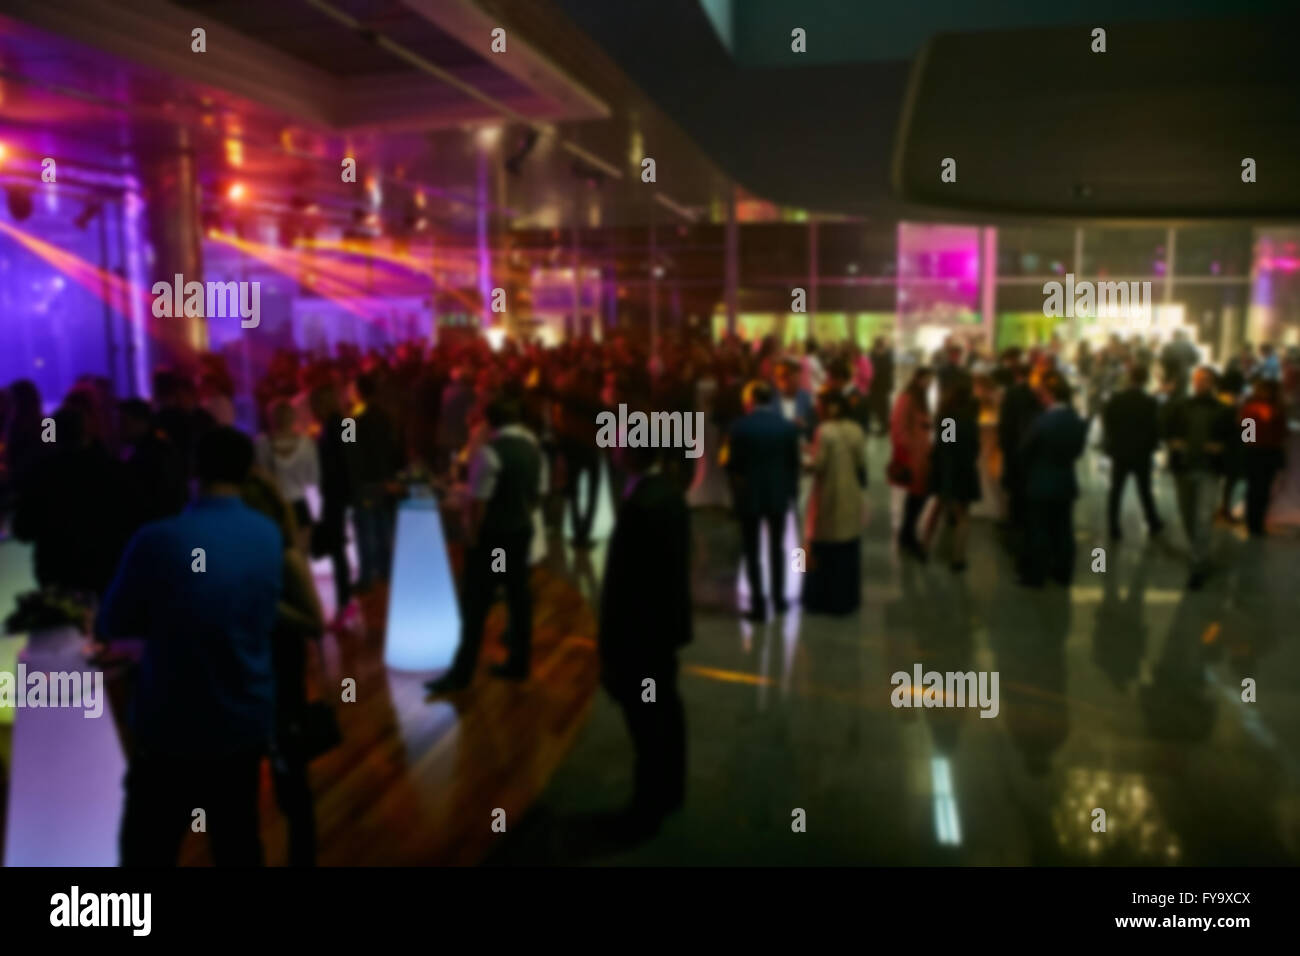 Abstract blurred people in party, sociability lifestyle concept - Stock Image